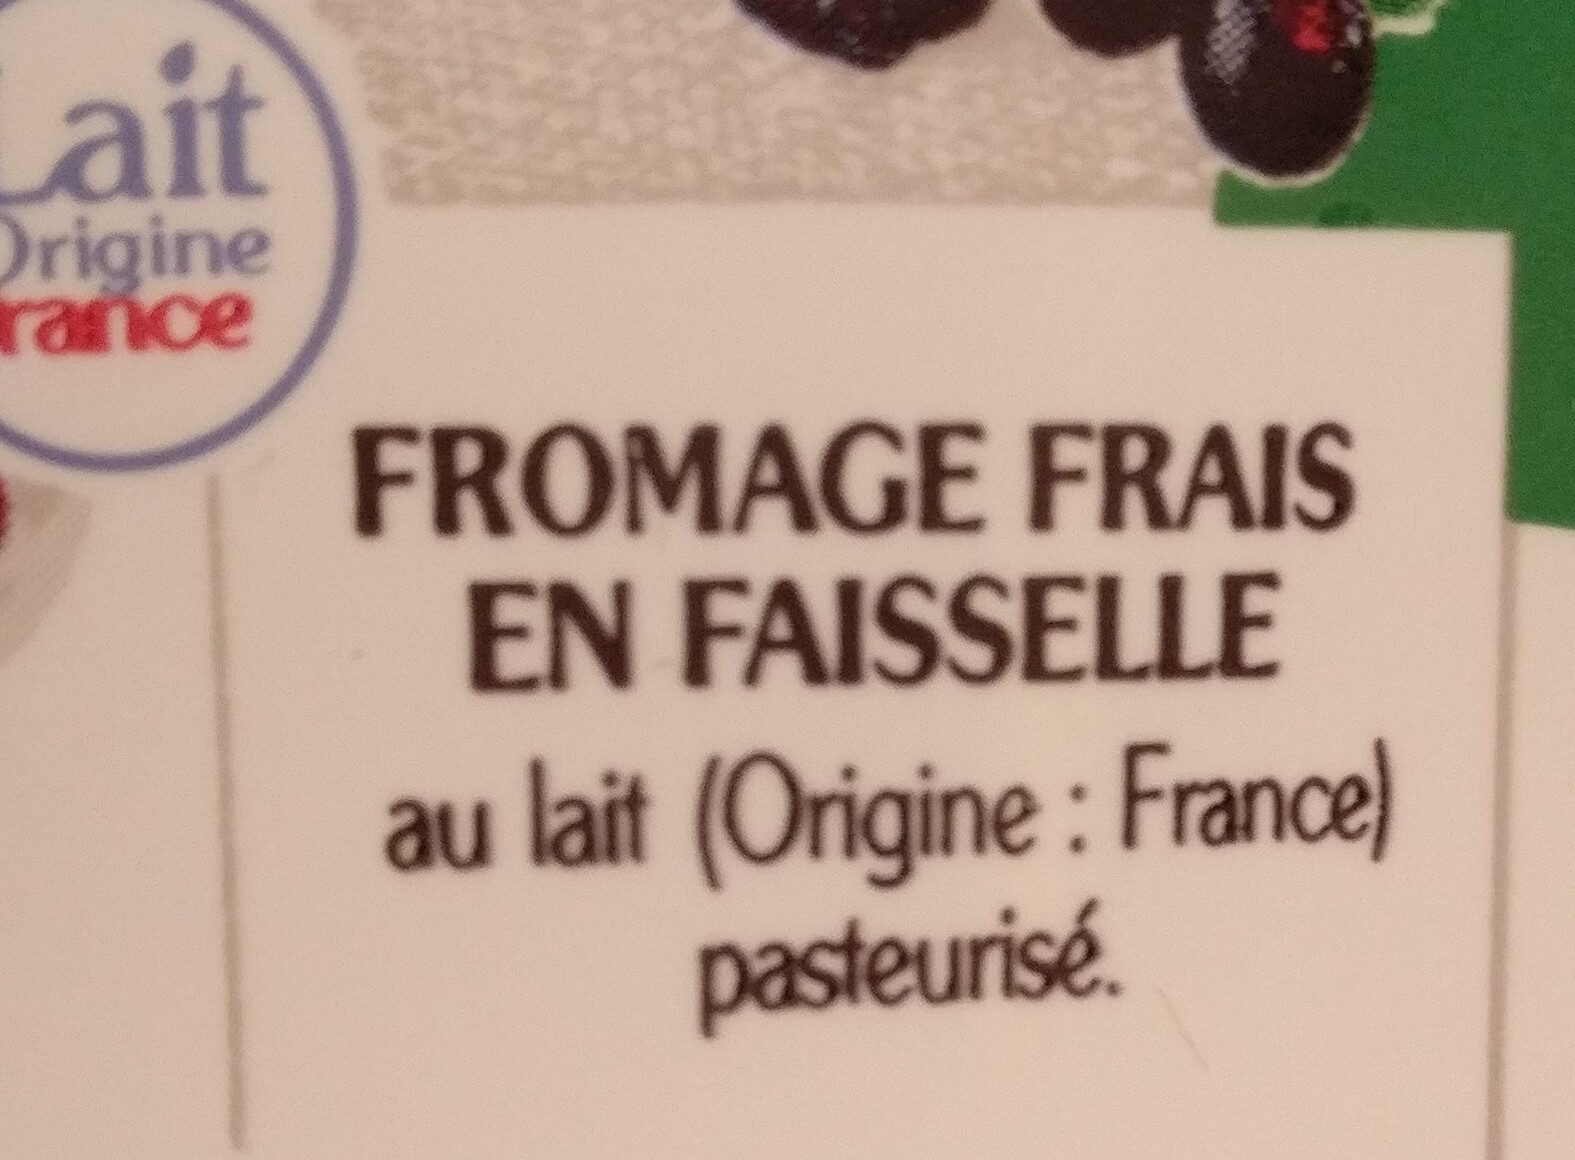 la faisselle - Ingredients